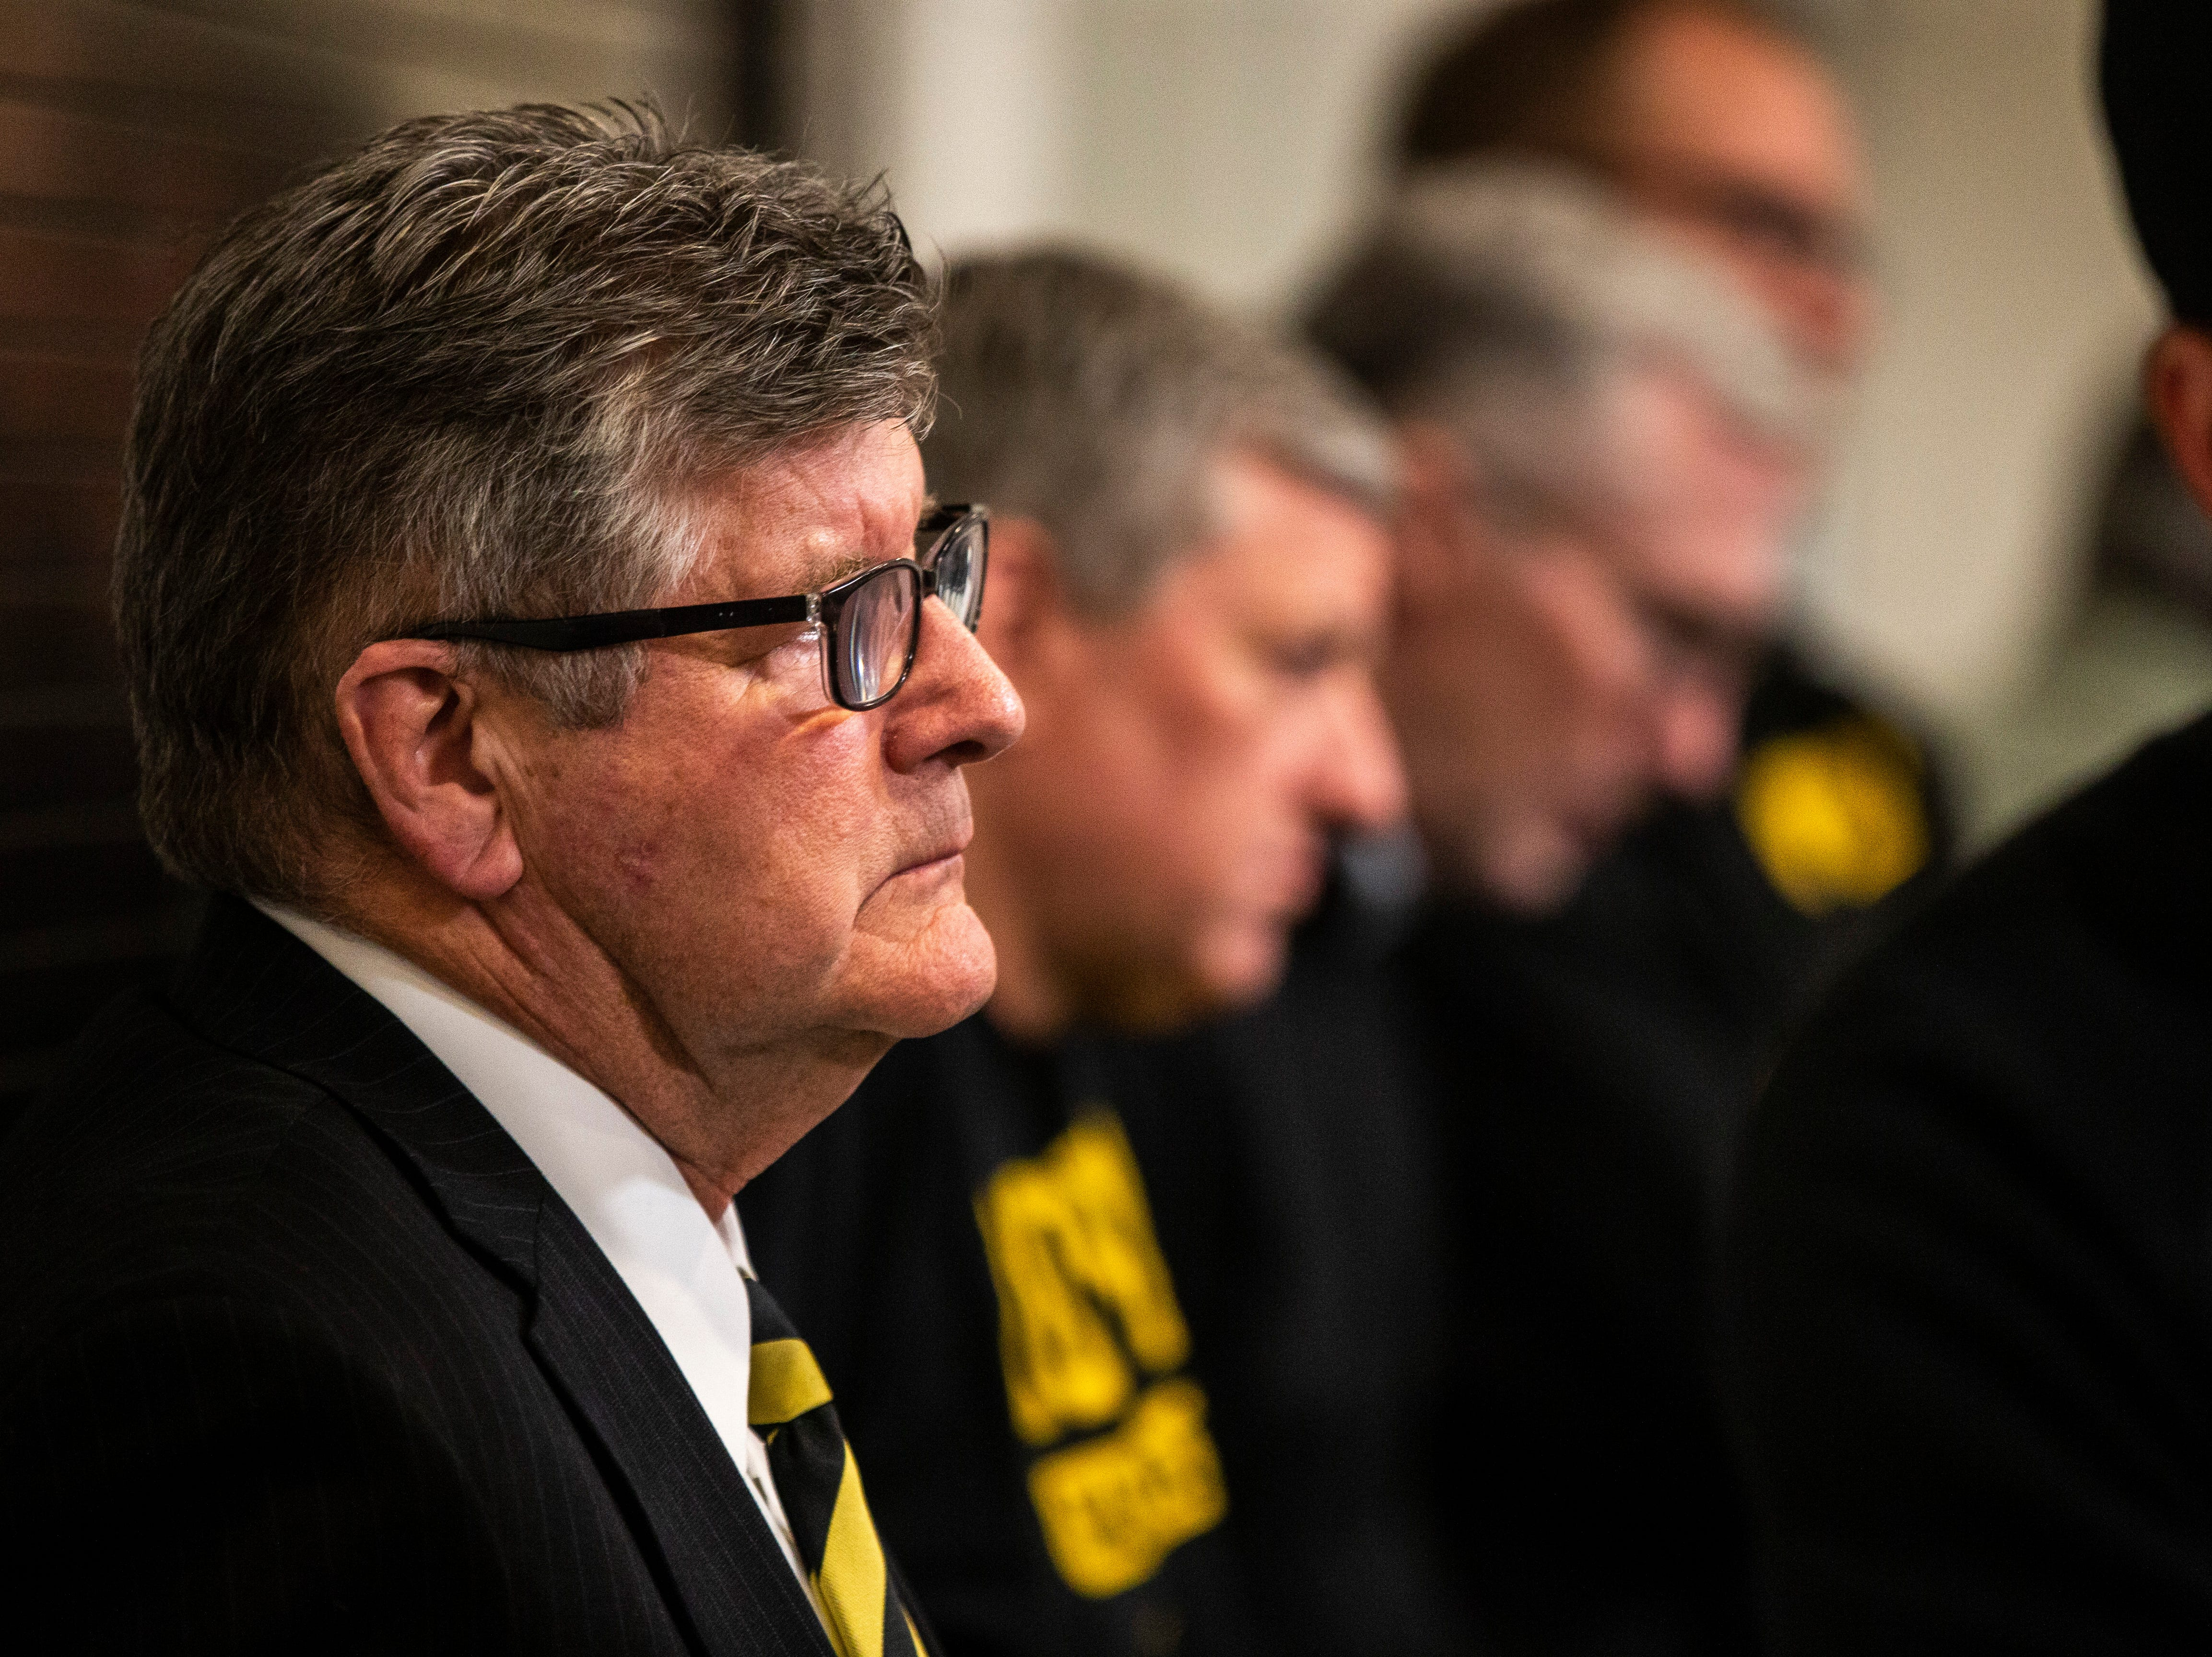 Iowa play-by-play commentator Gary Dolphin listens during a press conference on Wednesday, Feb. 27, 2019, at Carver-Hawkeye Arena in Iowa City, Iowa.